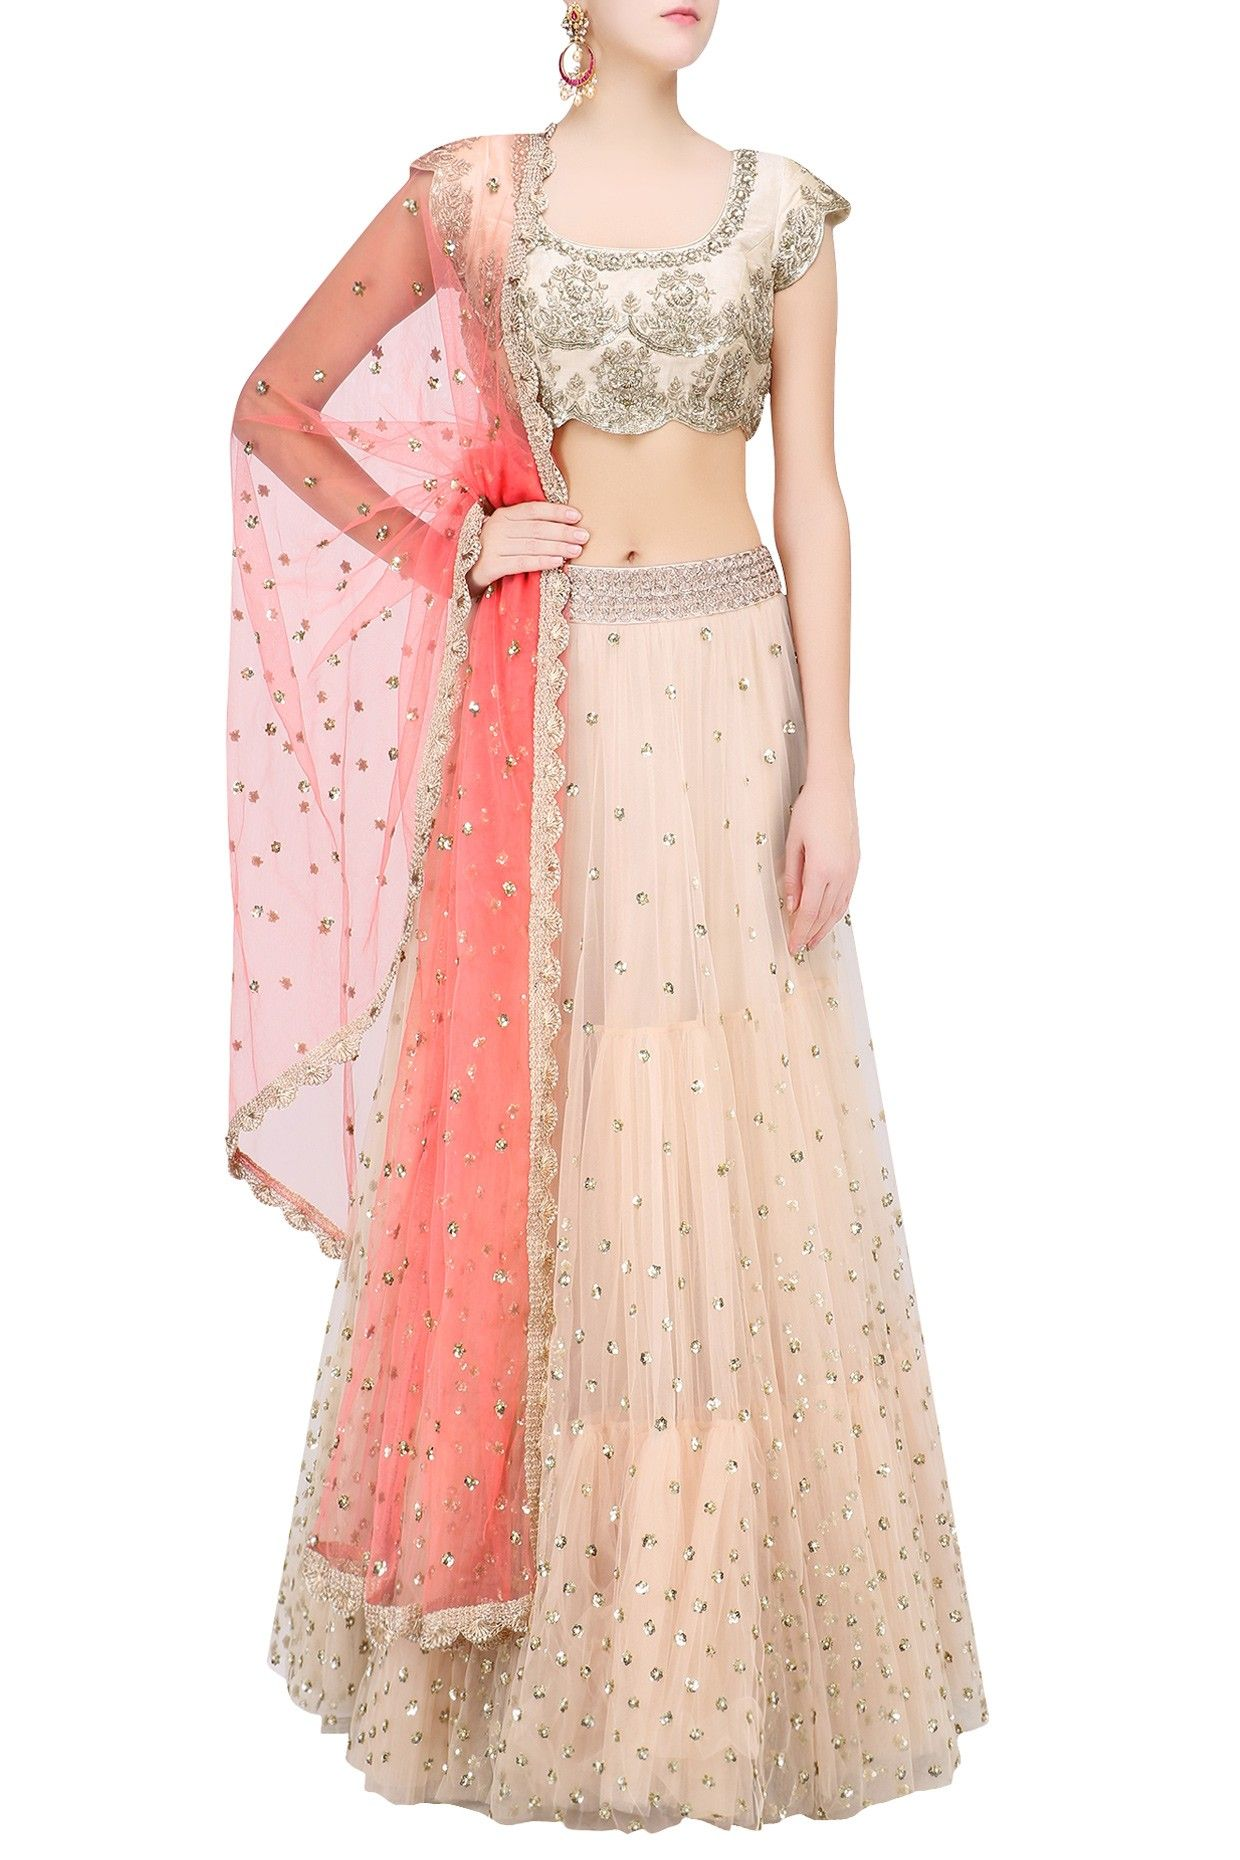 e9583df8d7 Off white floral sequins embroidered lehenga set with peach dupatta  available only at Pernia's Pop Up Shop.